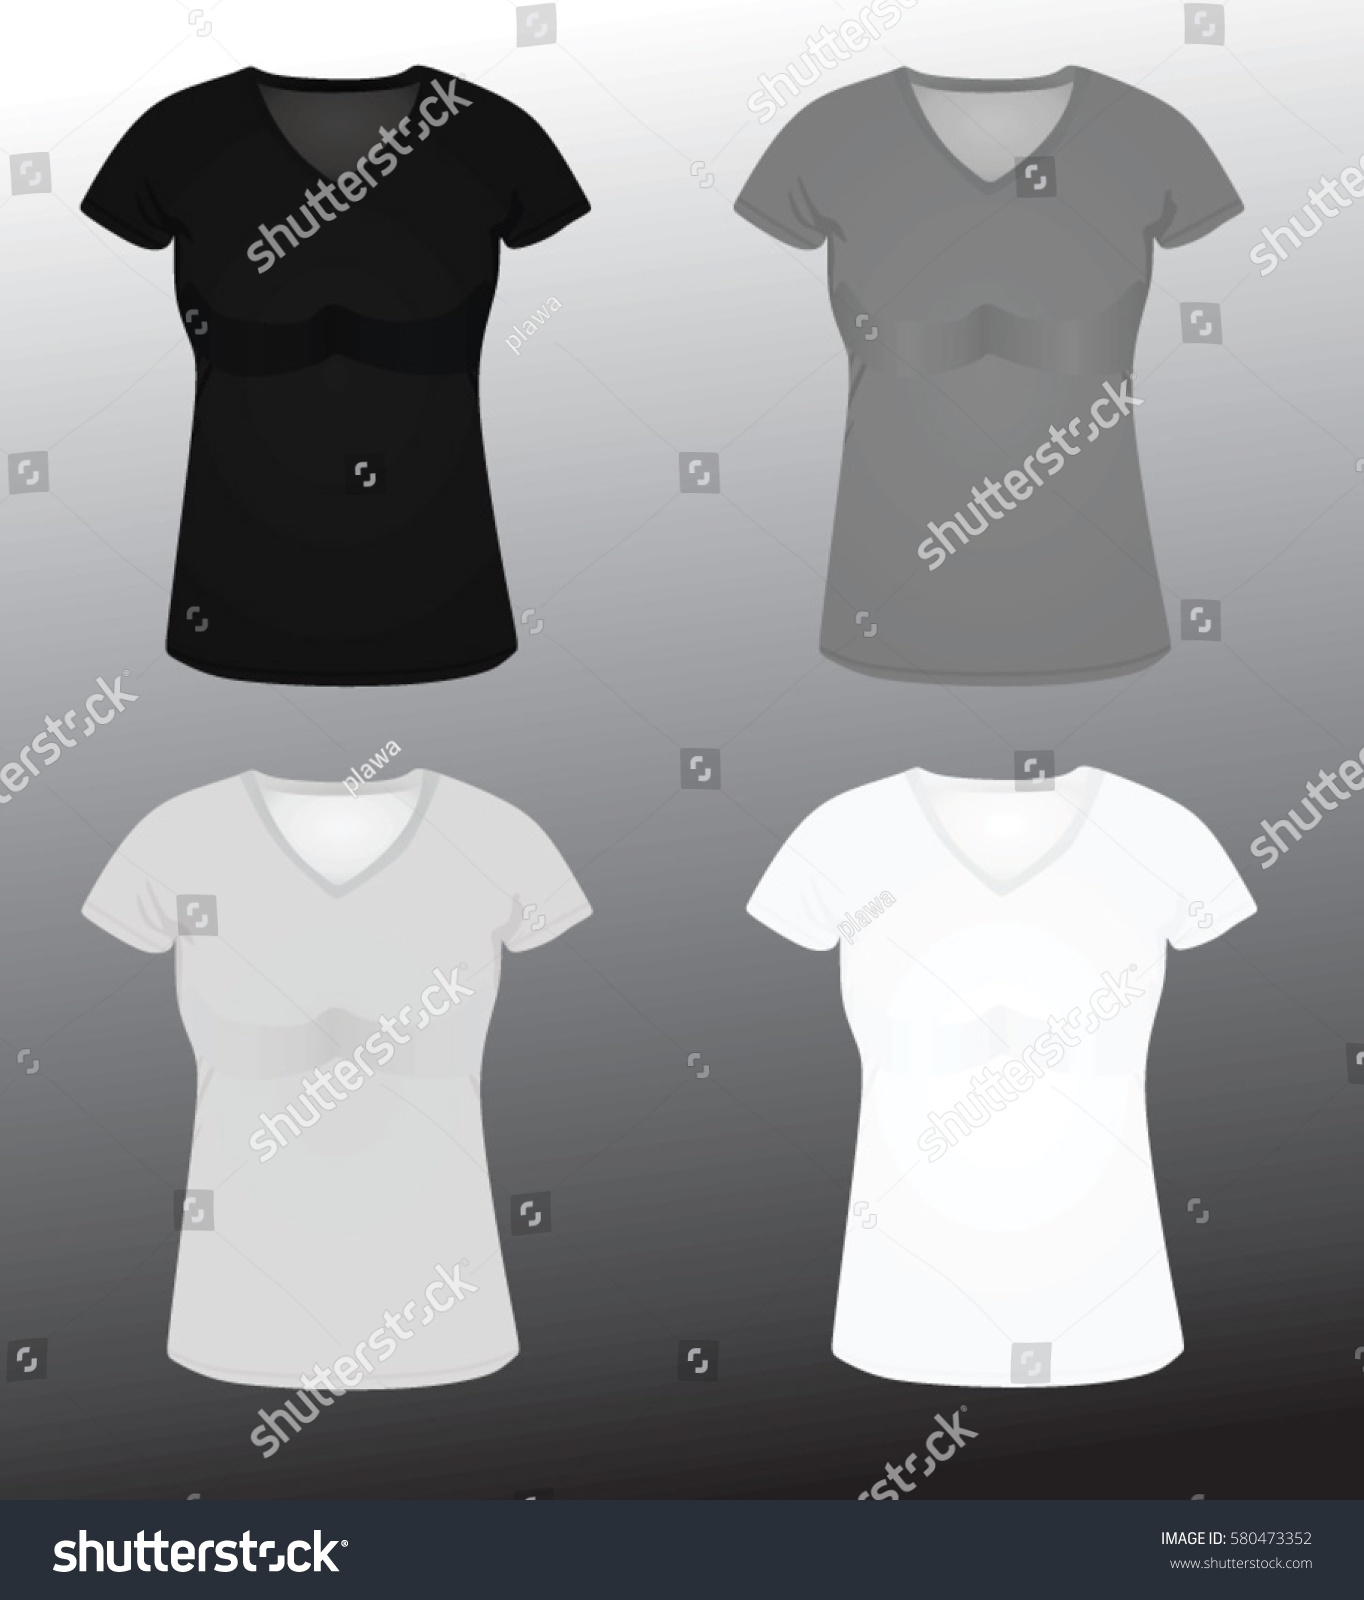 Black t shirt vector - Women T Shirt Vector